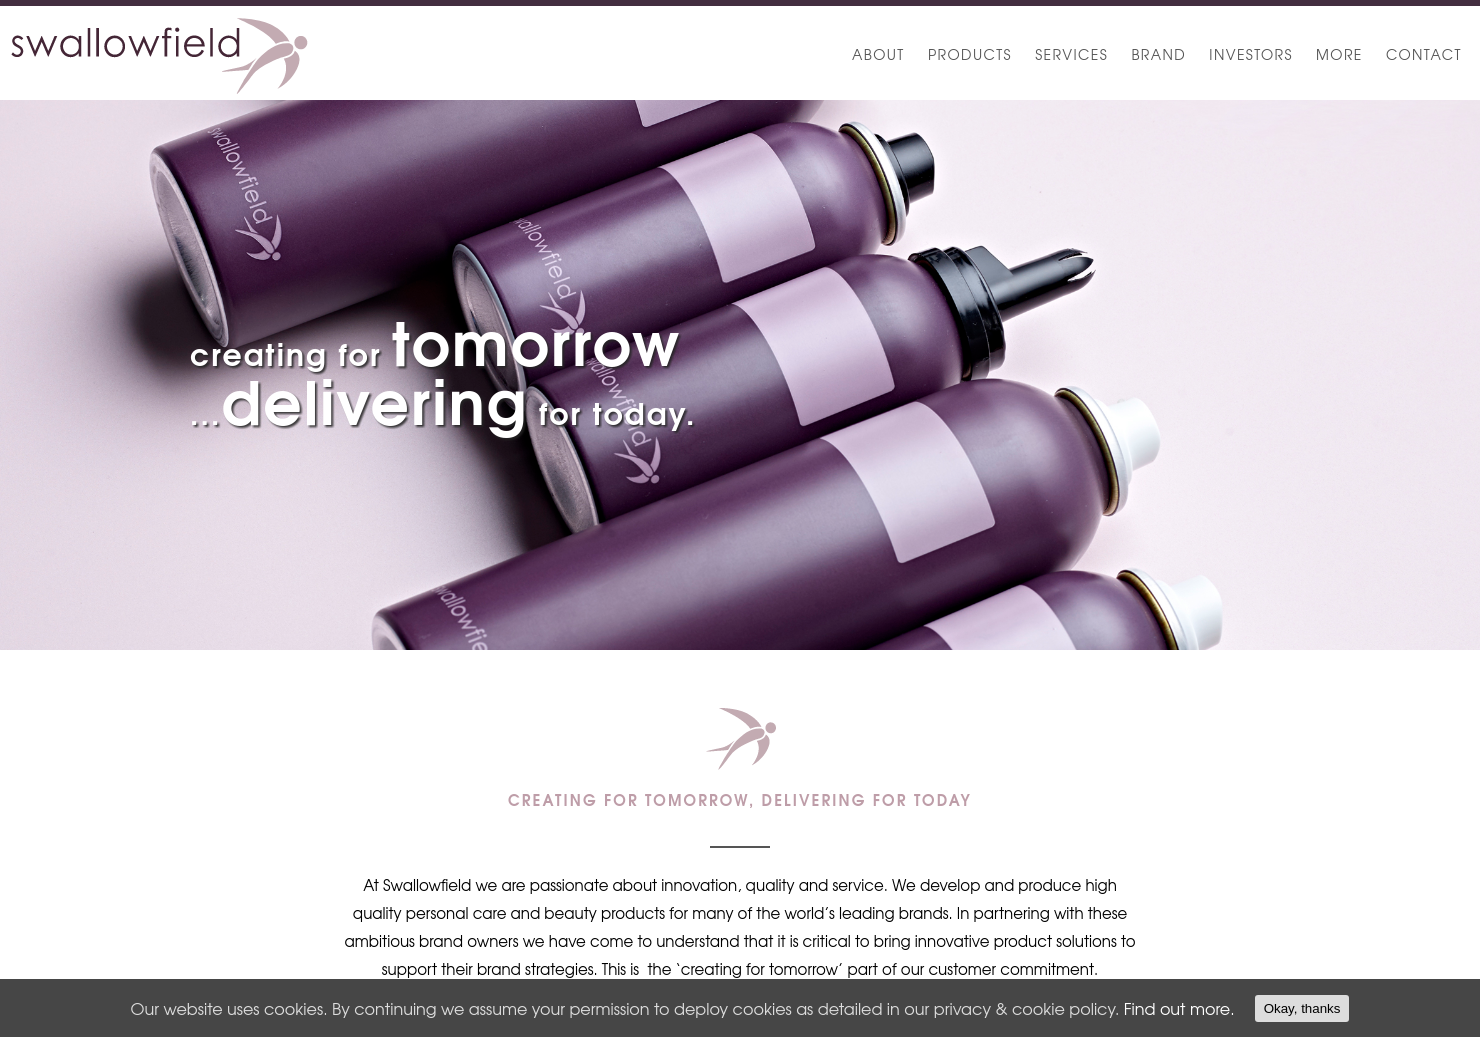 Swallowfield Home Page